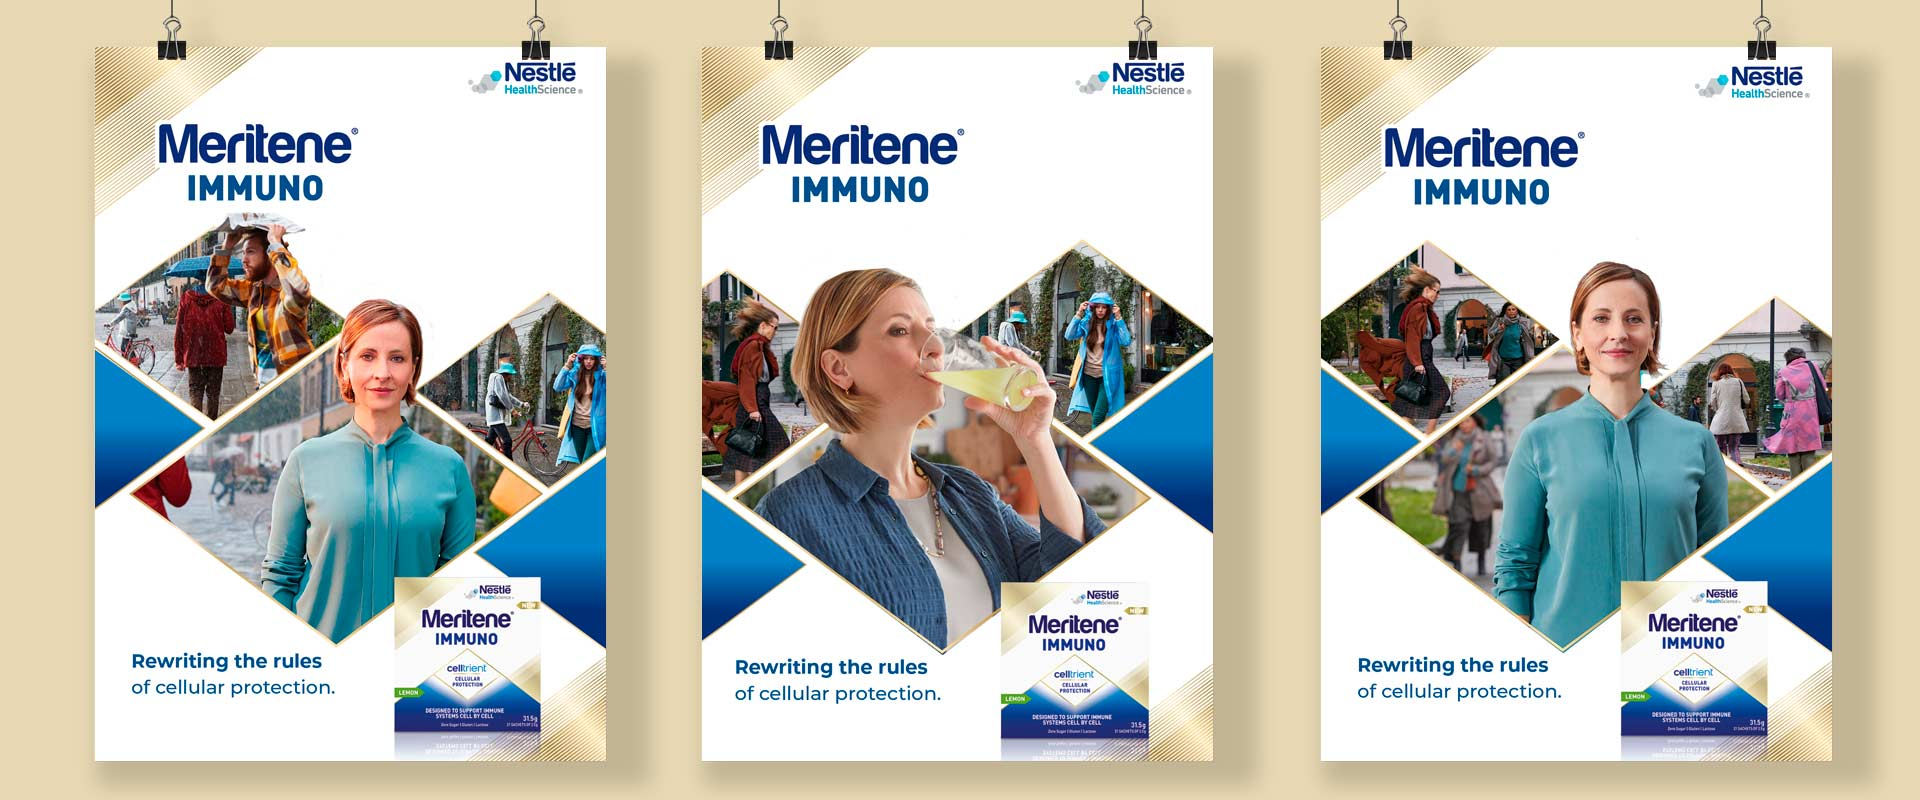 ATC - All Things Communicate creates the Meritene Immuno advertising campaign